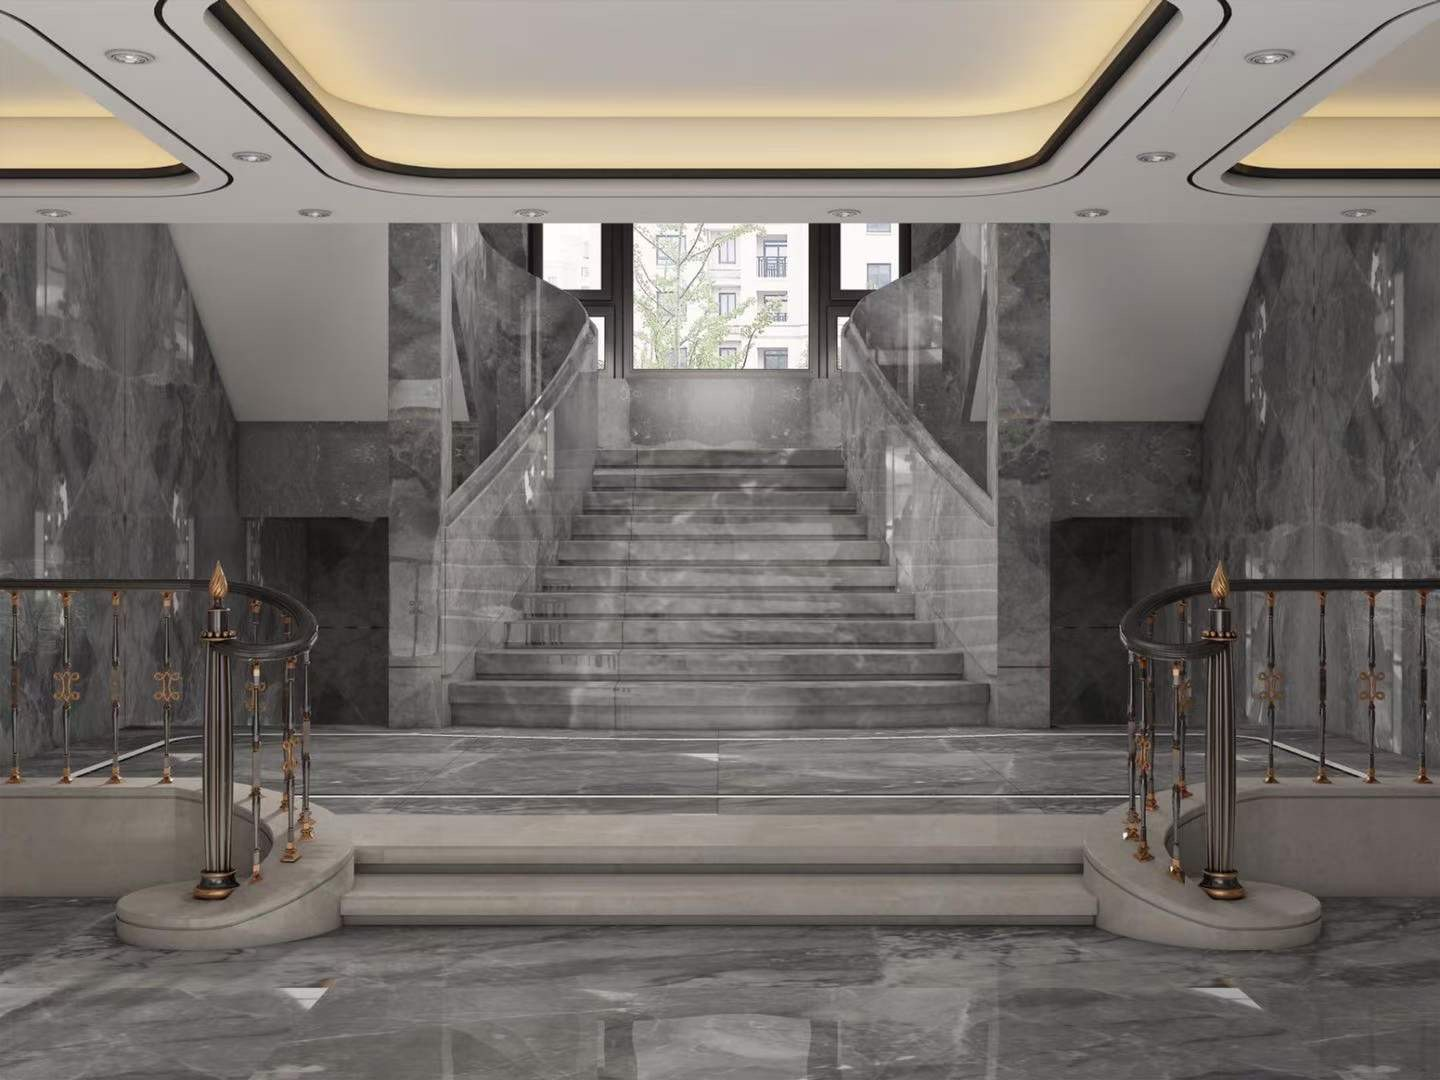 light china grey marble projects in the whole room